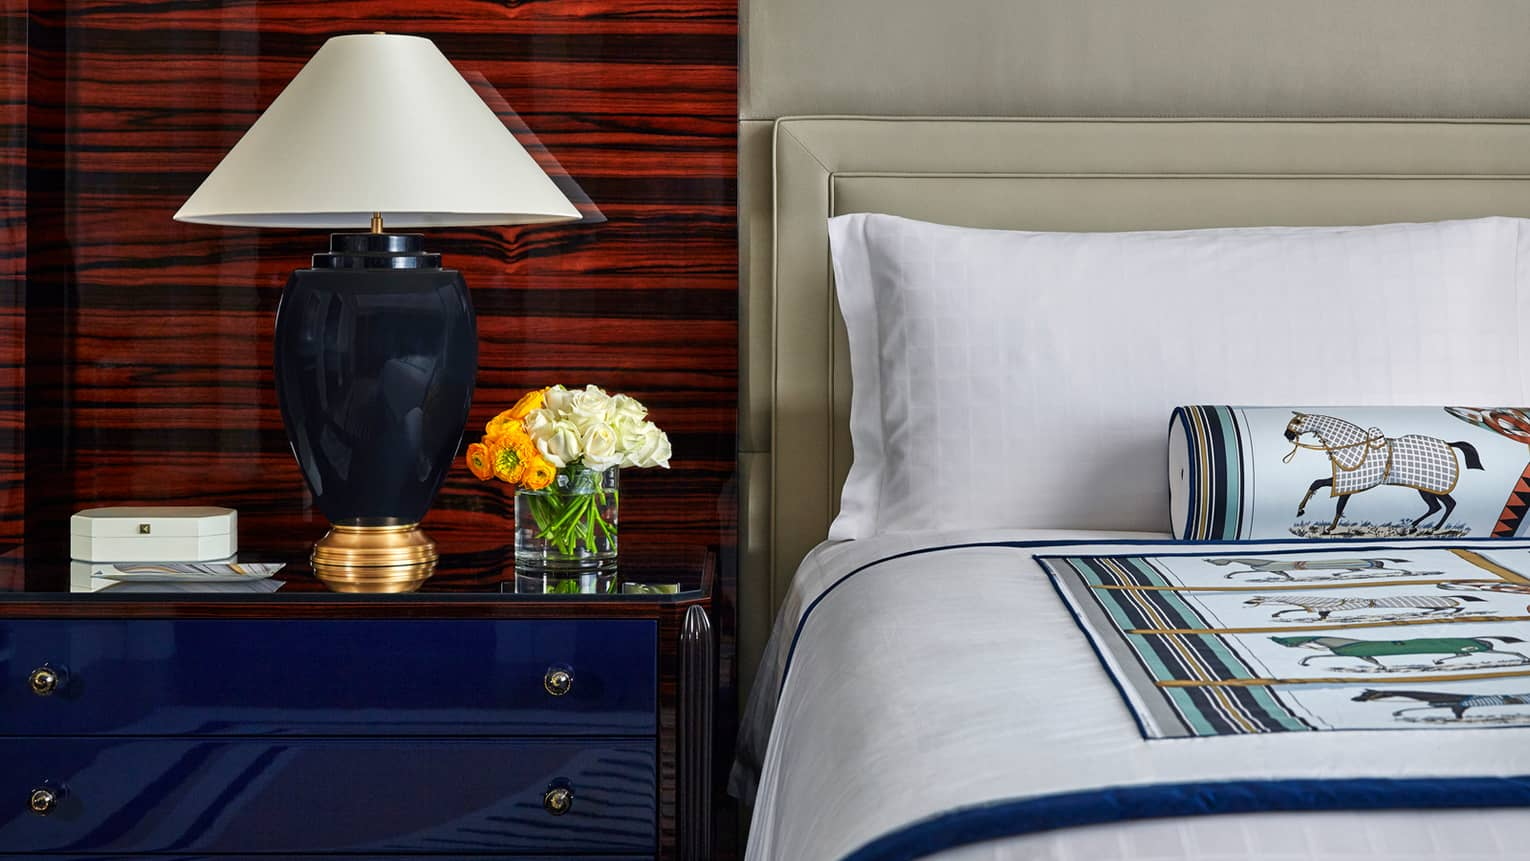 Superior Room close-up of corner of bed, pillow, decorative horse on rolled accent pillow, blue nightstand